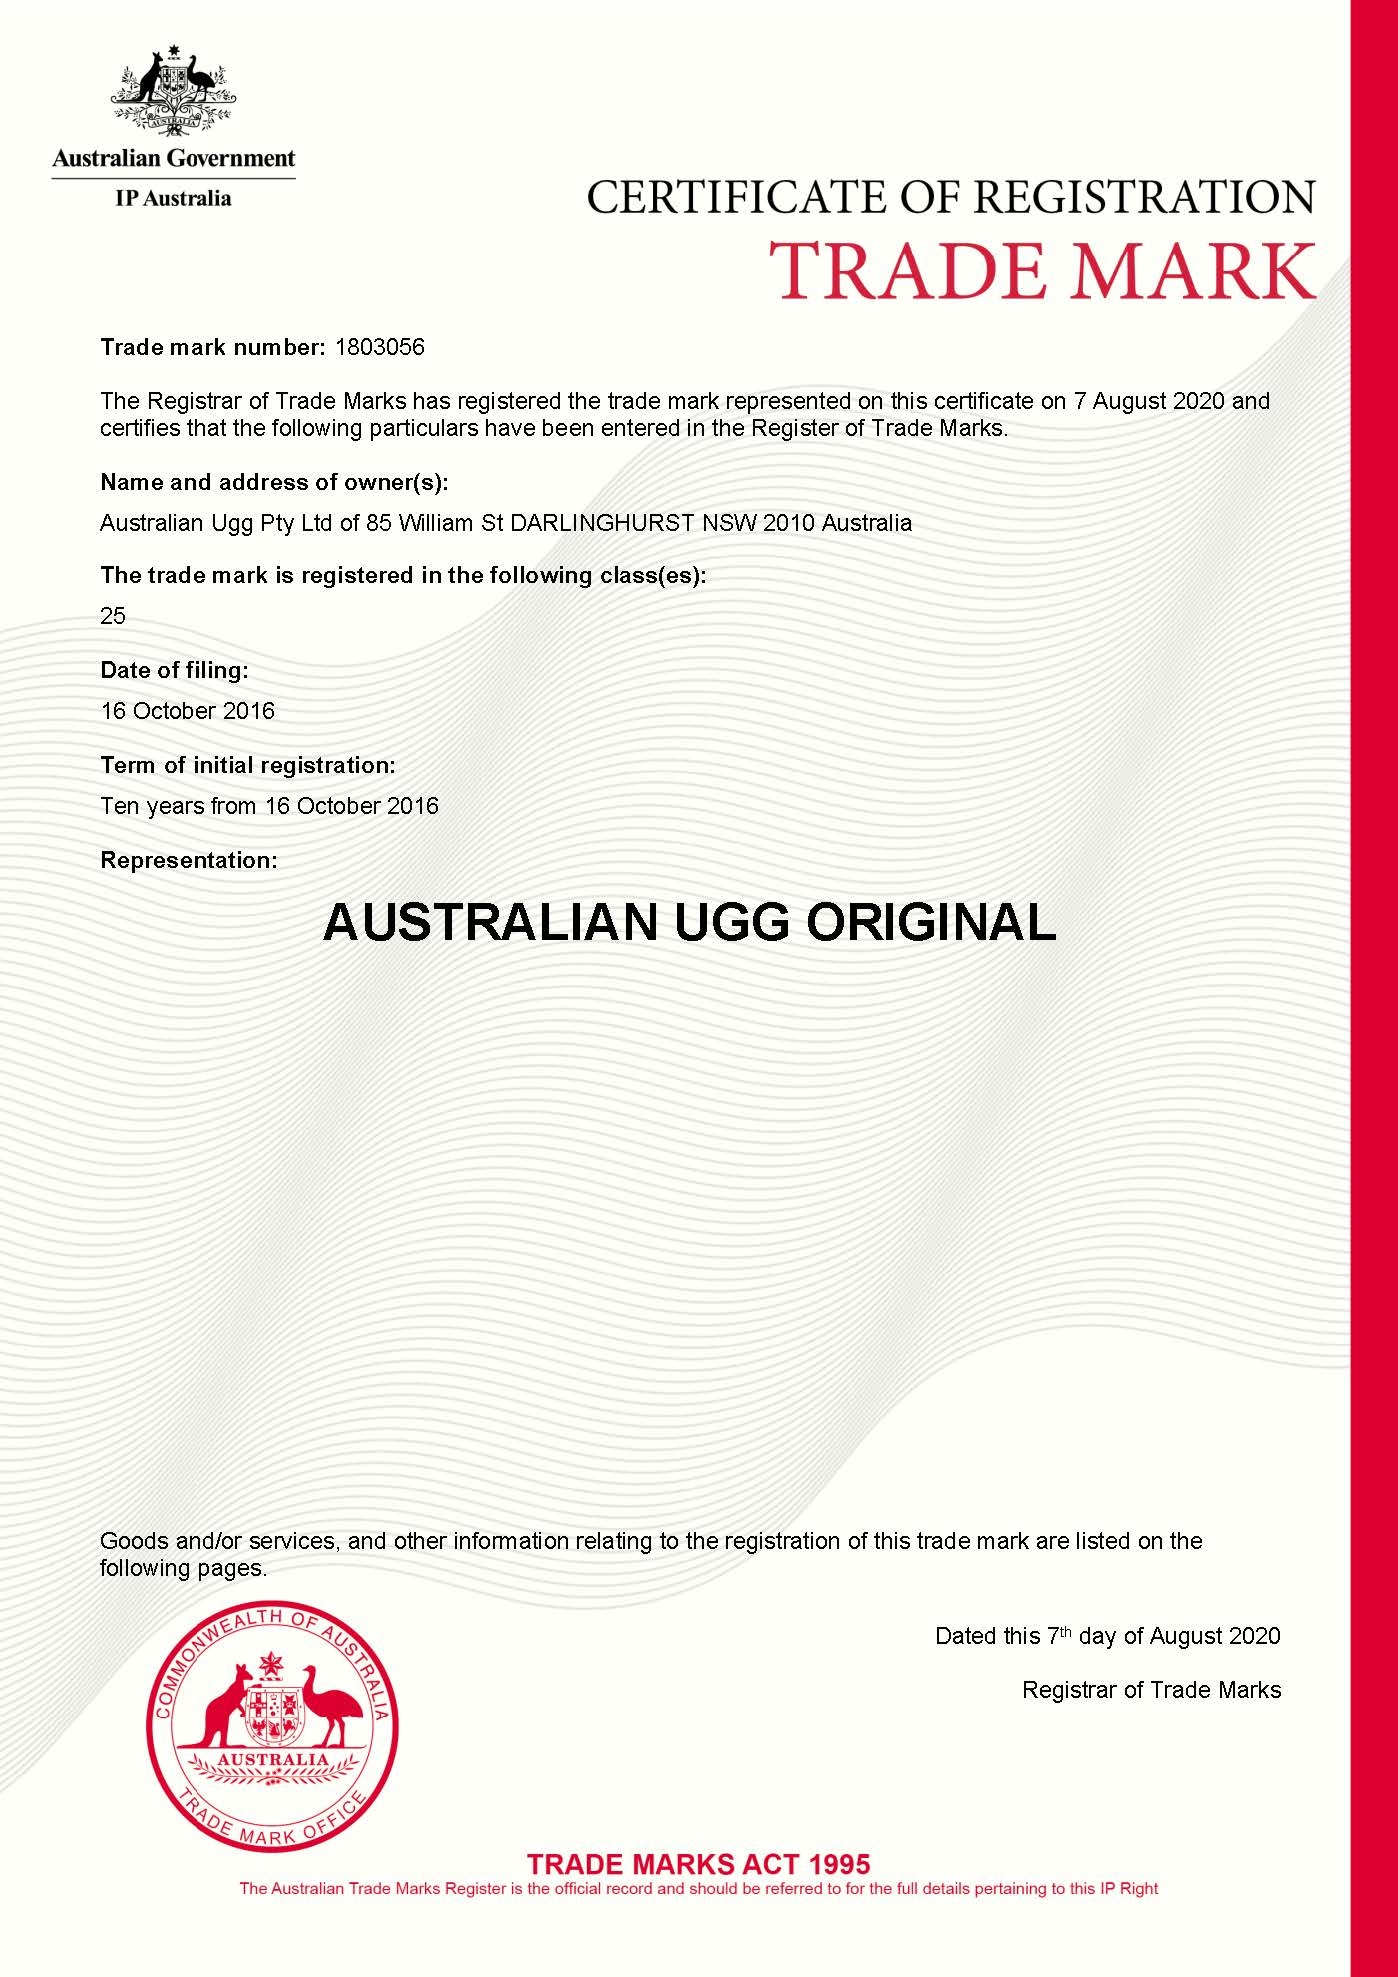 AUSTRALIAN UGG ORIGINAL Trade Mark Certificate 1803056